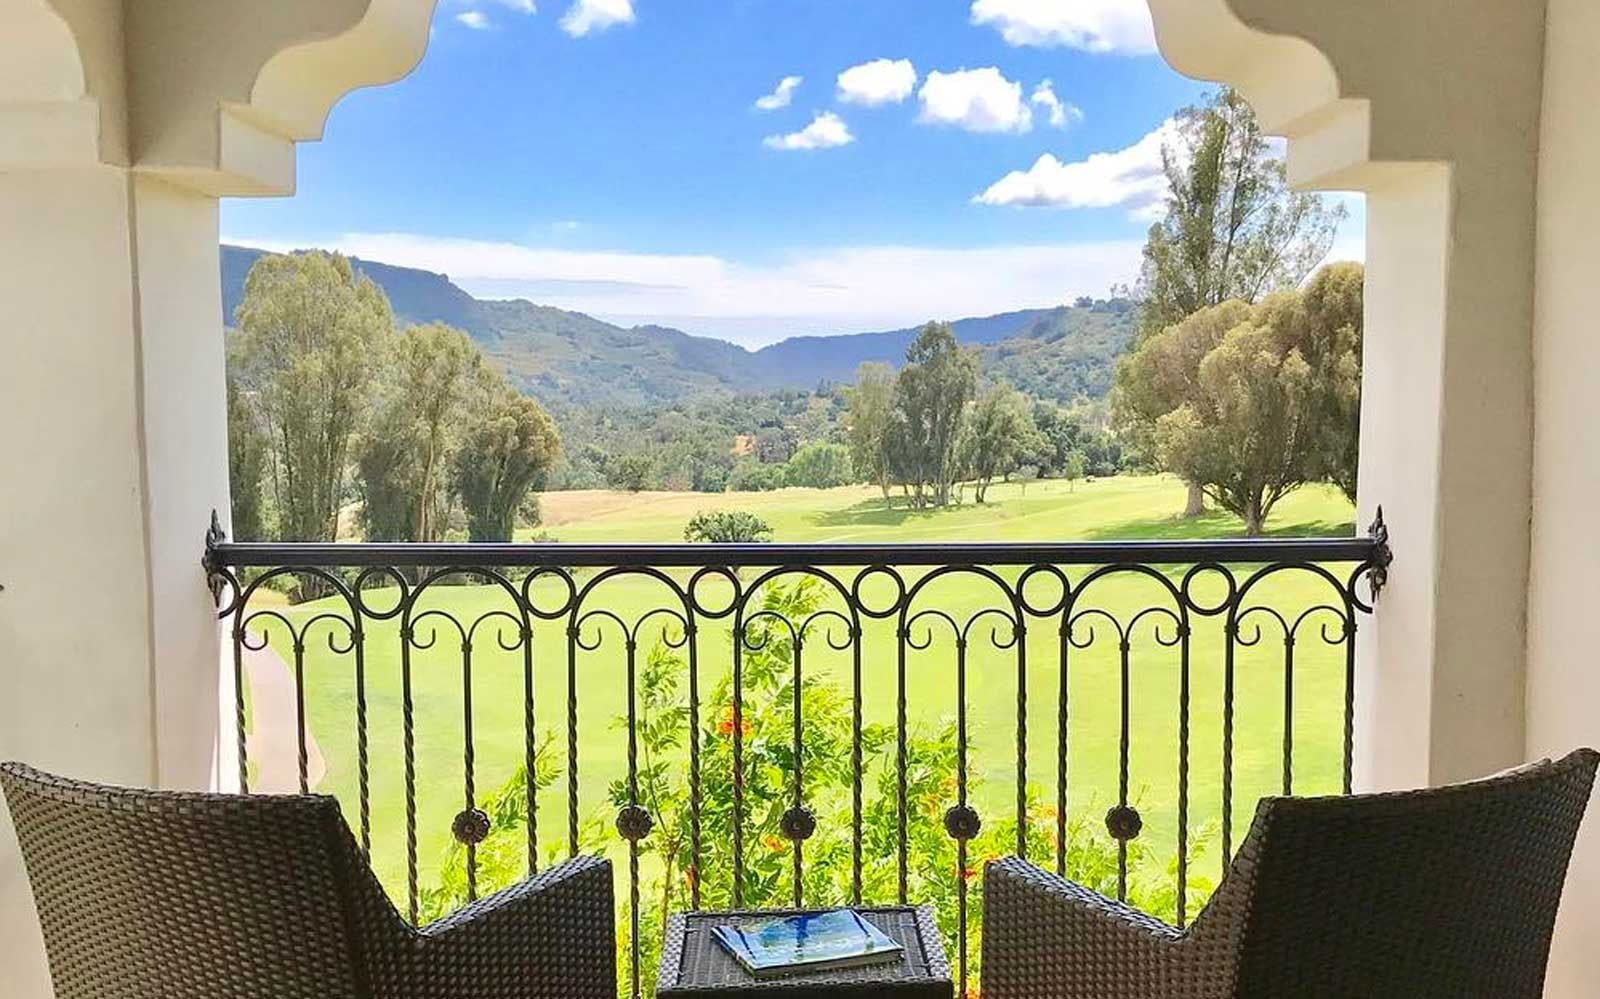 Window view from Ojai Valley Inn